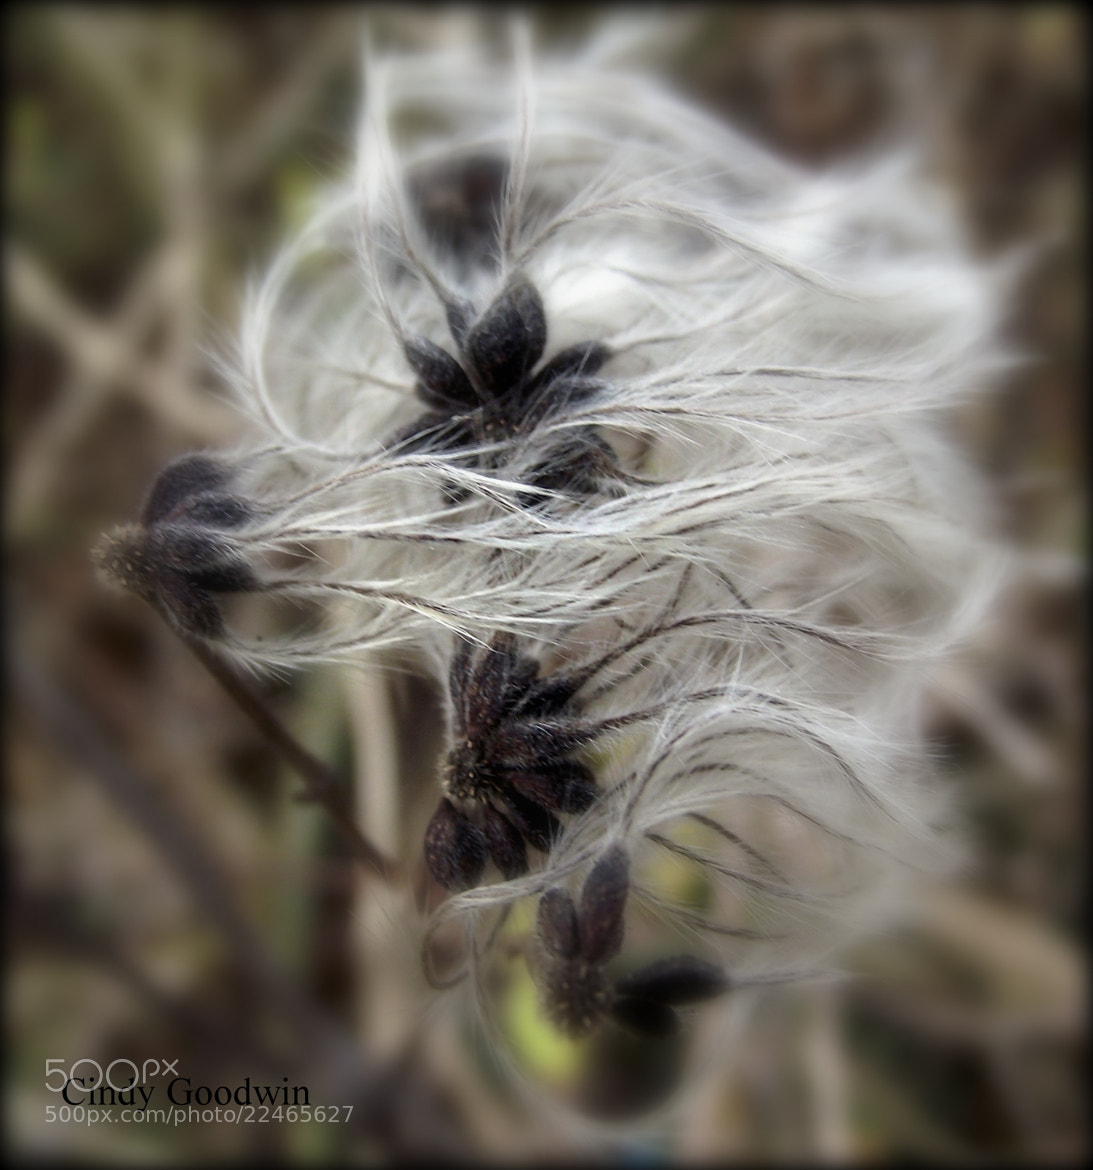 Photograph Bad Hair day by Cindy Goodwin on 500px